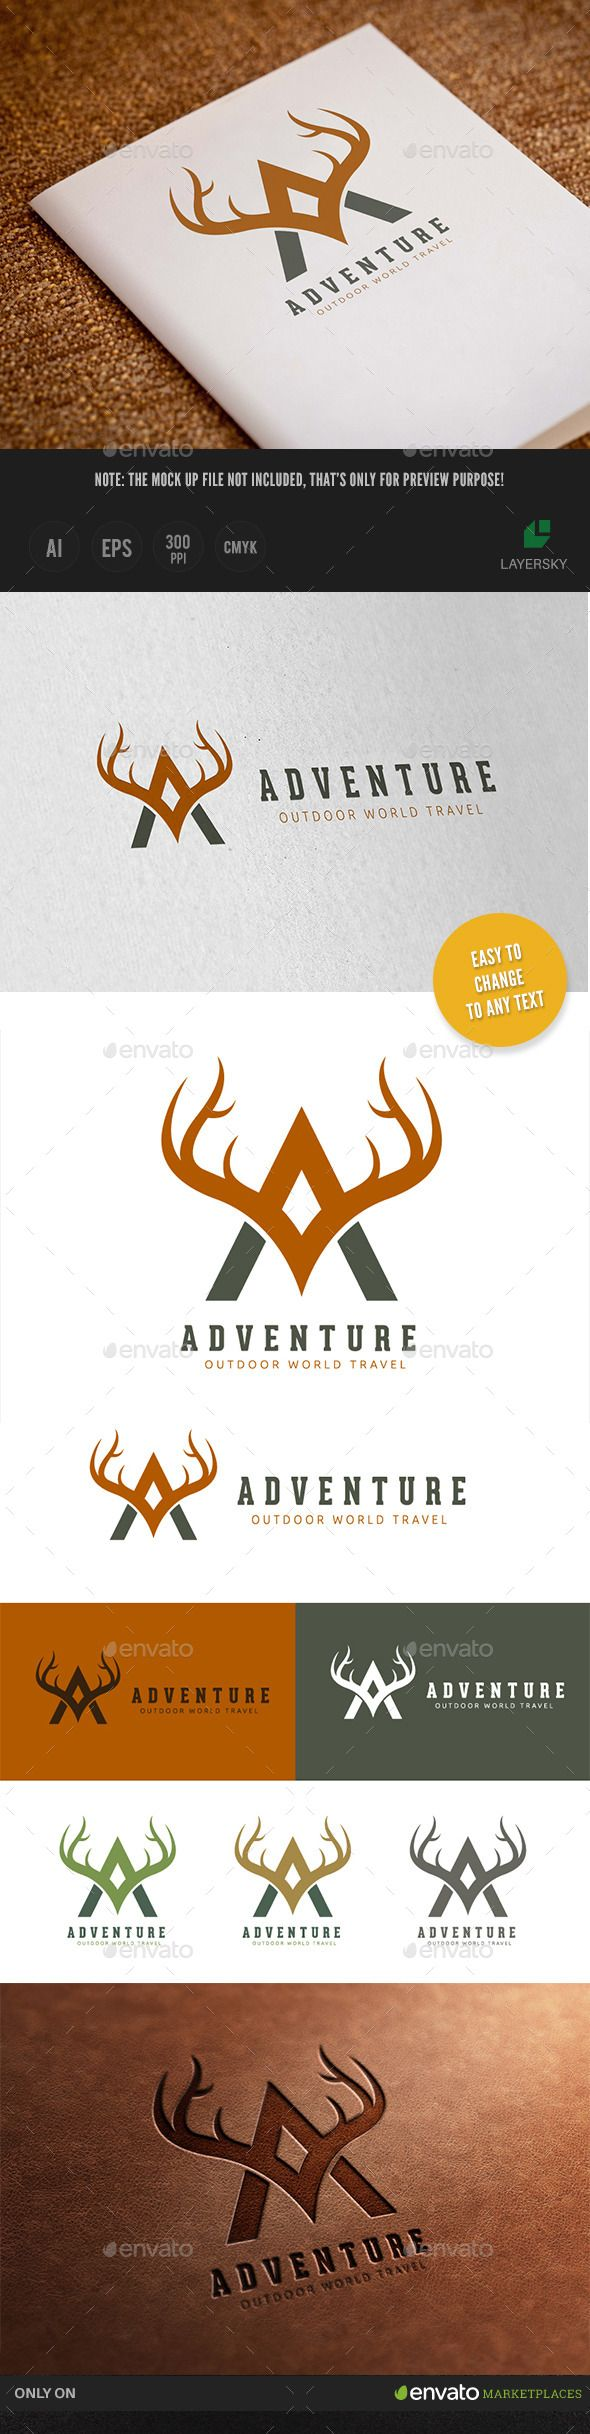 Outdoor Adventures Logo — Vector EPS #team #deer • Available here → https://graphicriver.net/item/outdoor-adventures-logo/11765458?ref=pxcr